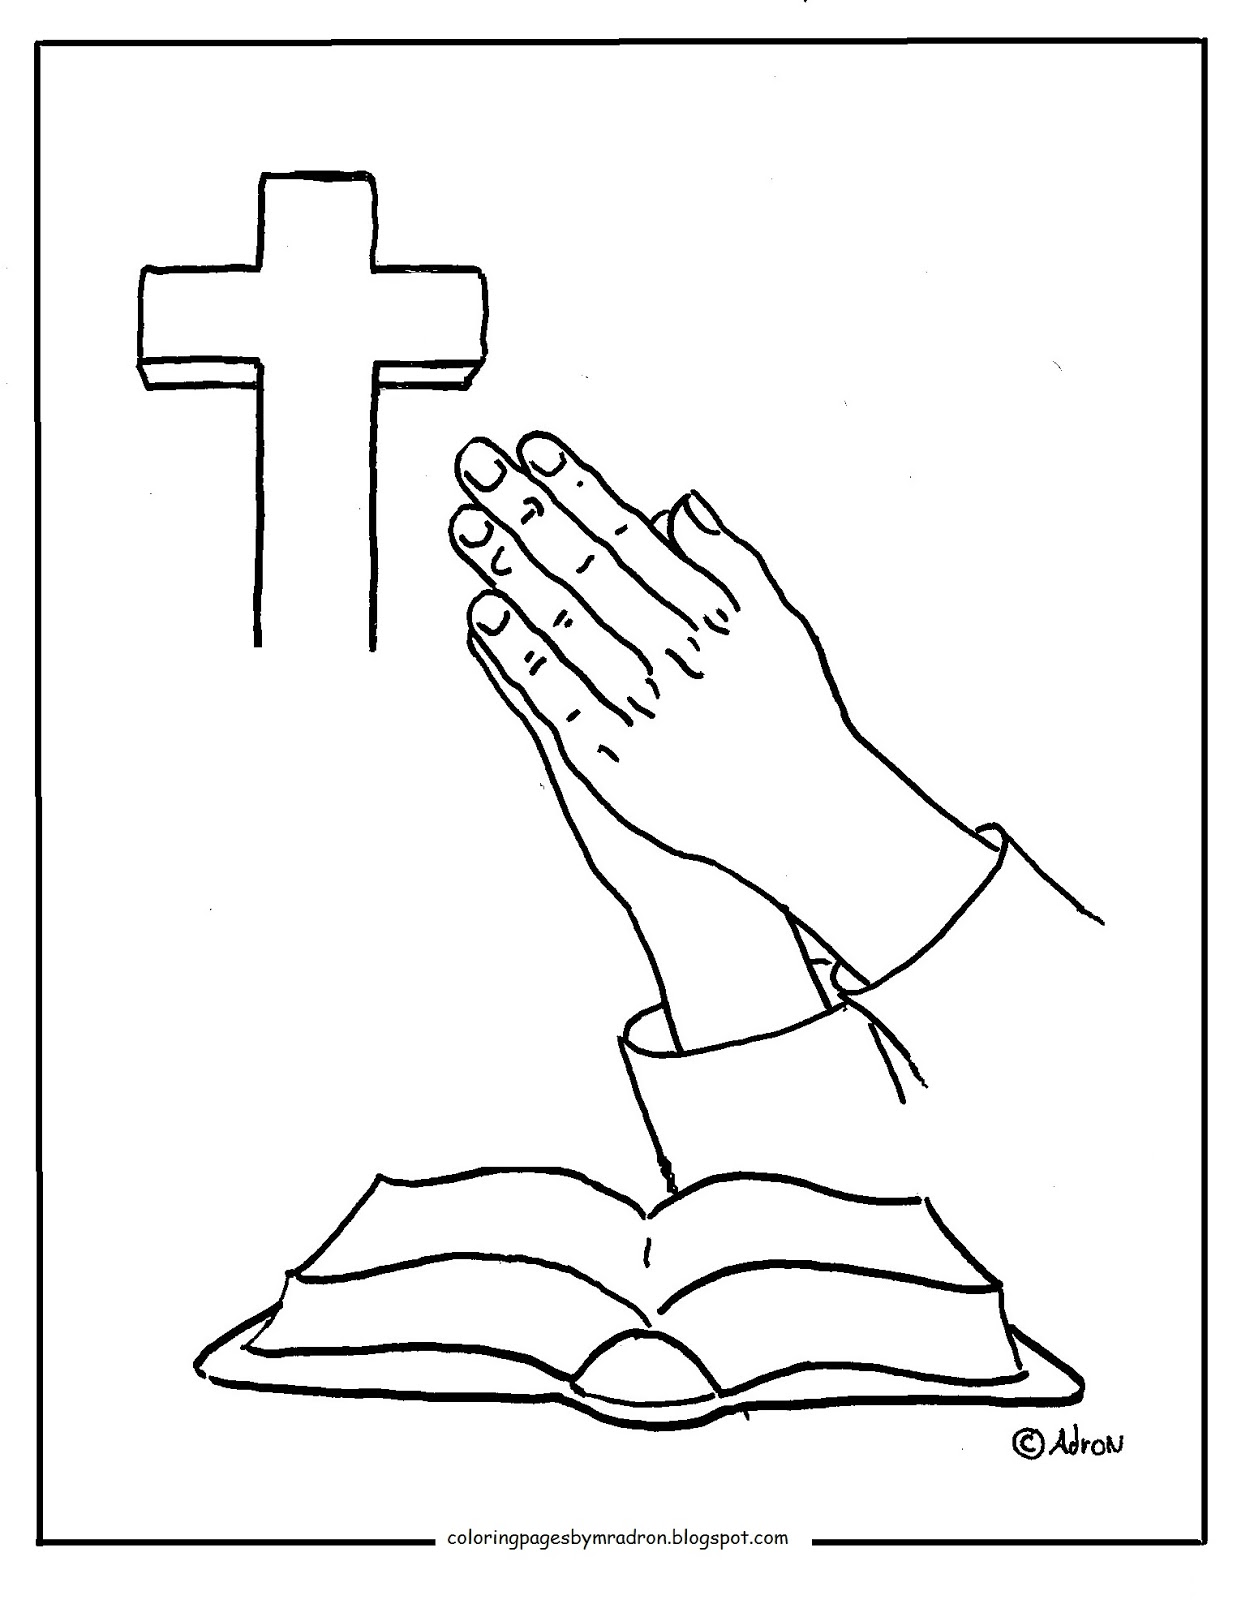 1237x1600 Unique Ideas Praying Hands Coloring Page Drawings Of Google Search